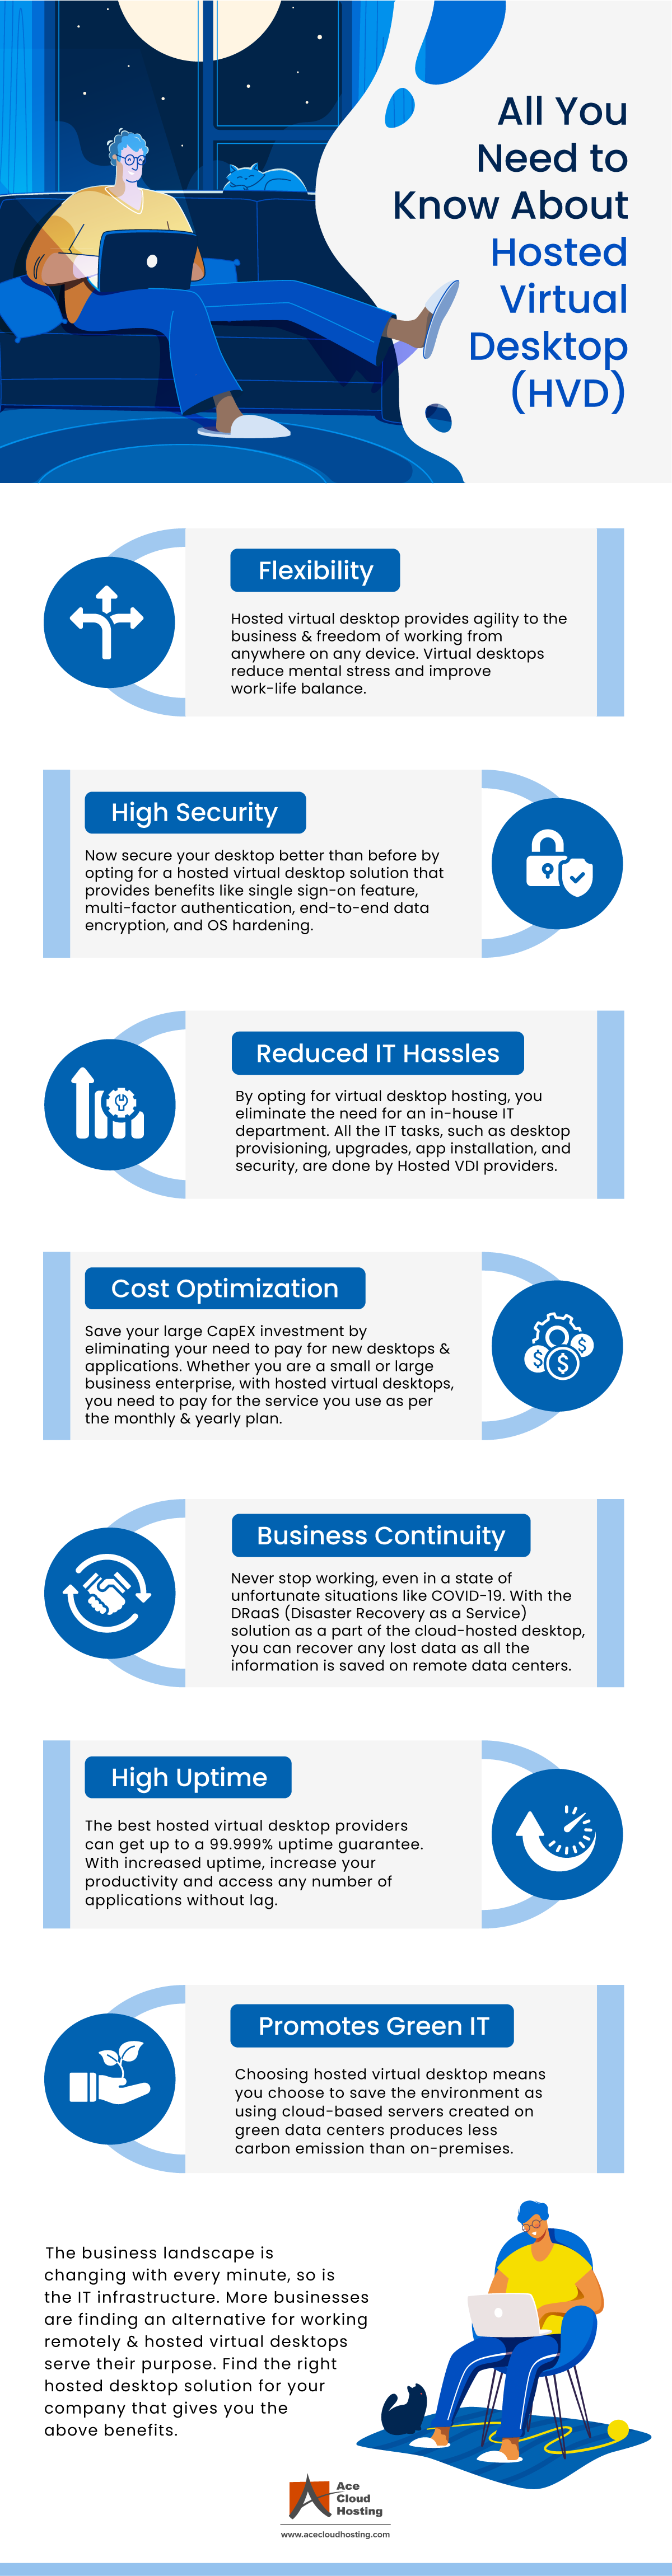 All You Need to Know About Hosted Virtual Desktop(HVD) Infographic